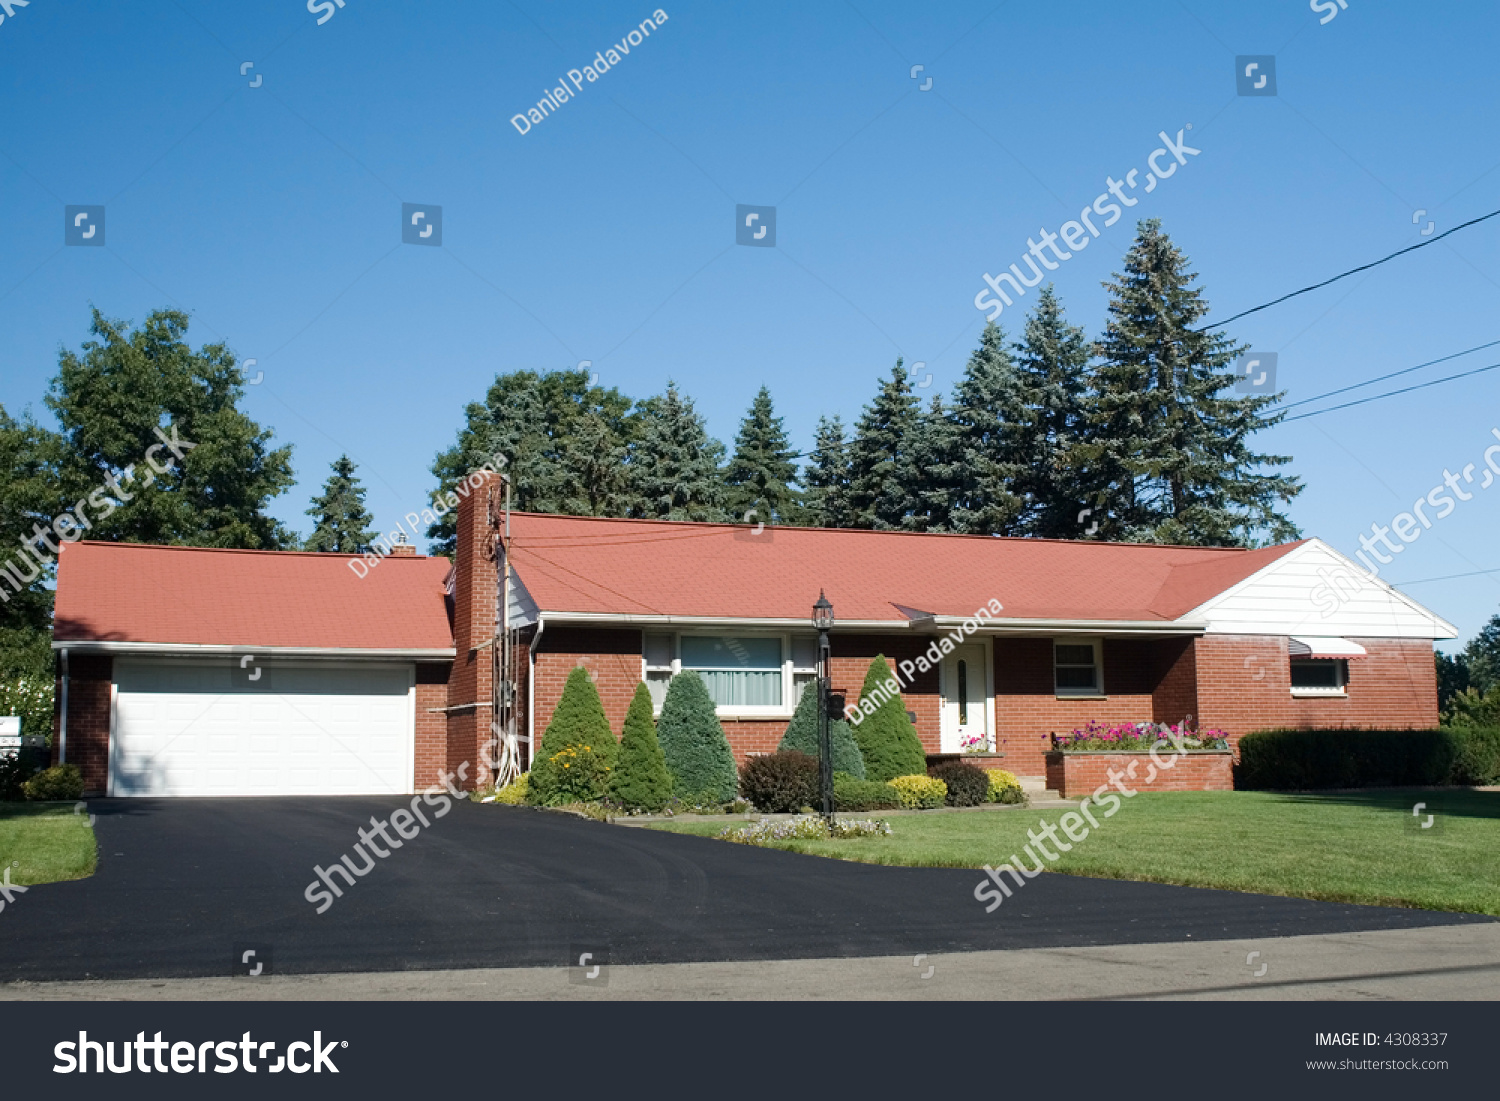 American one story ranch style house stock photo 4308337 for One story ranch house